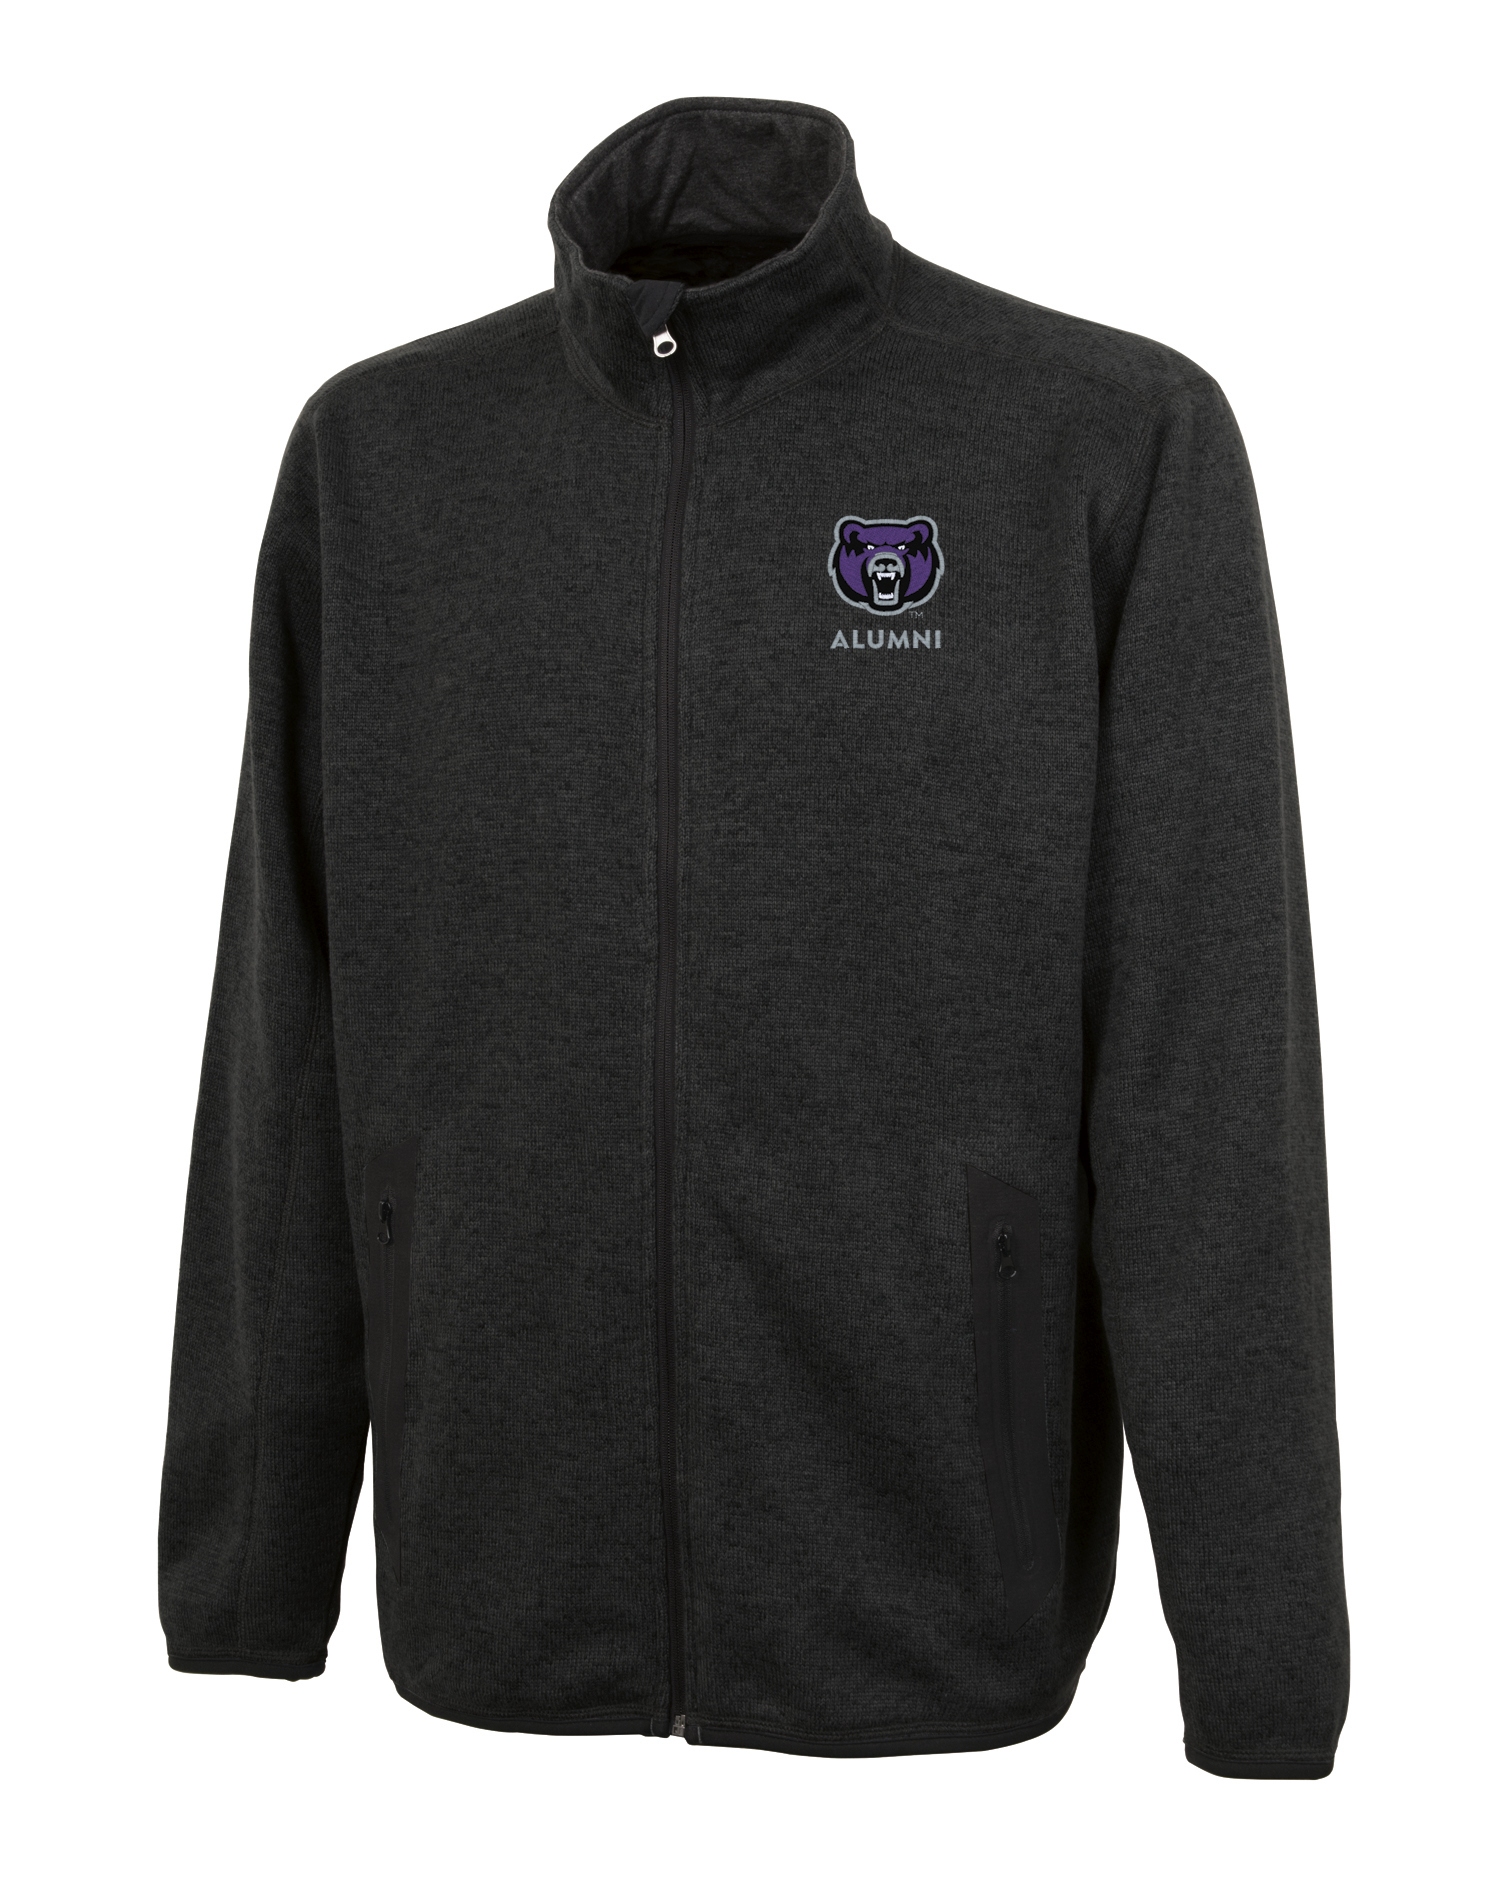 Men's Alumni Heathered Fleece Jacket